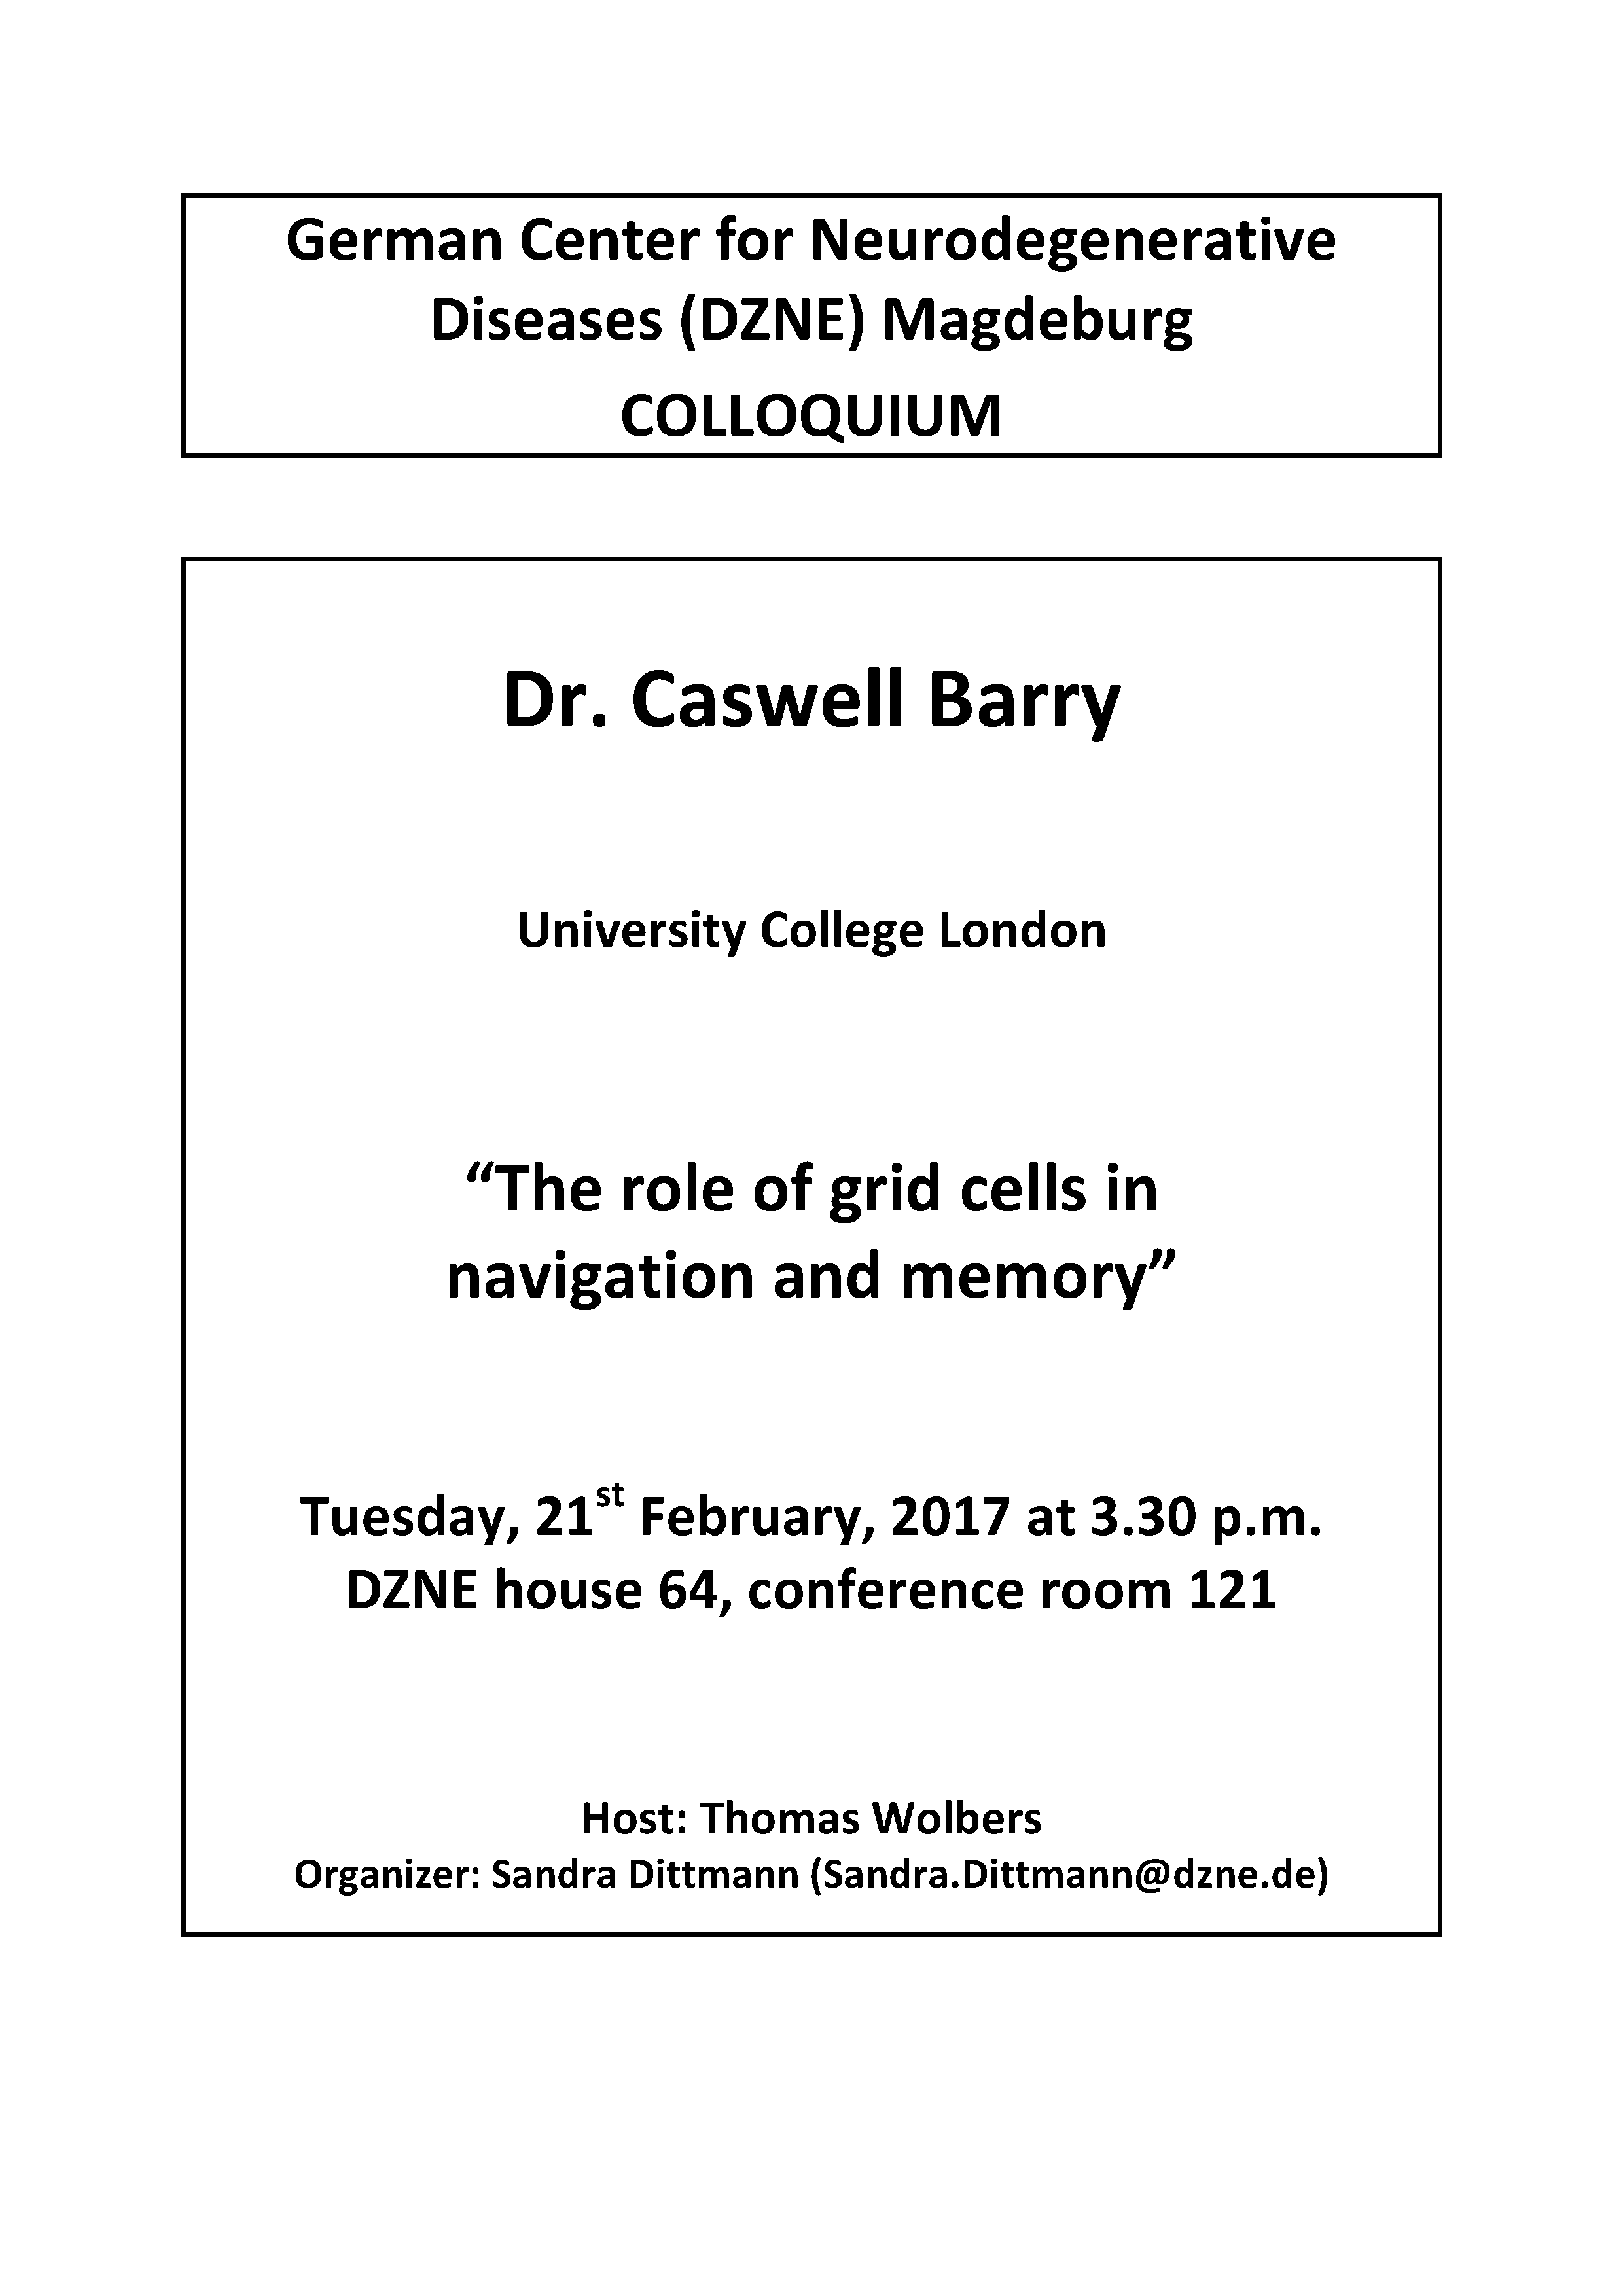 20170221 Dr. Caswell Barry DZNE Colloquium